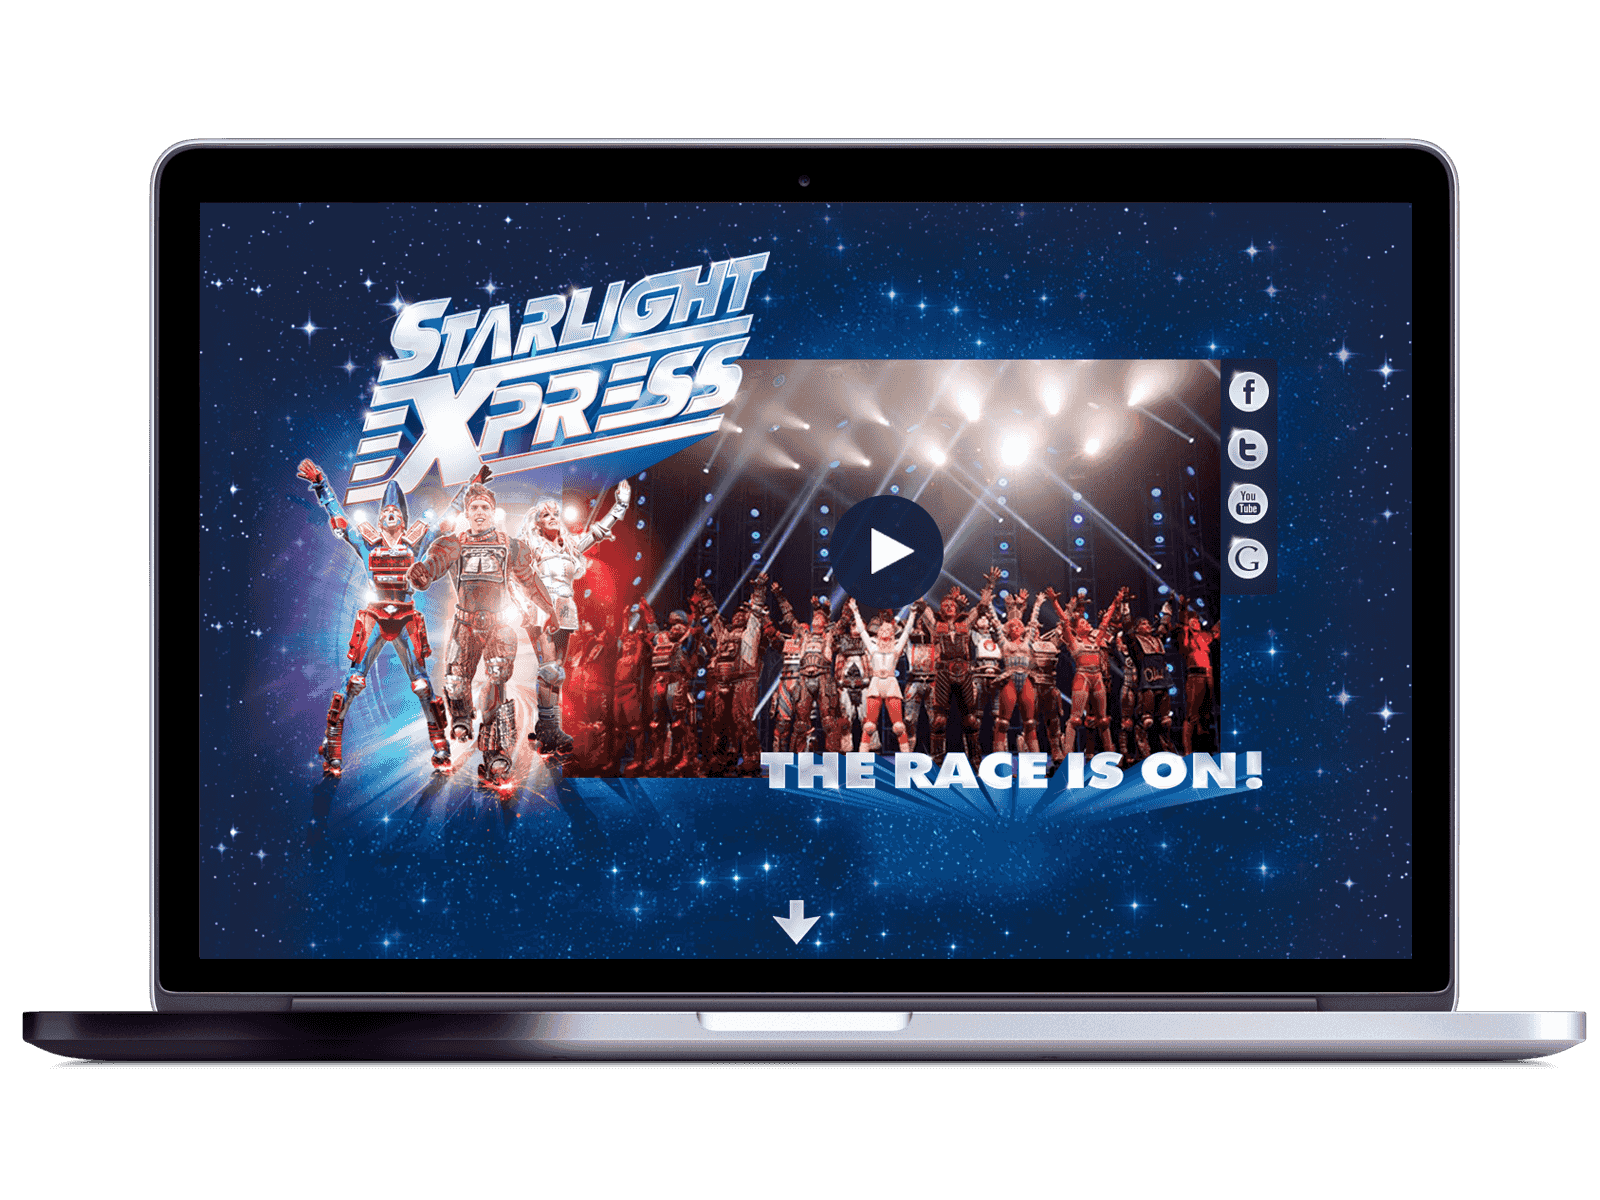 Starlight Express header in Mac